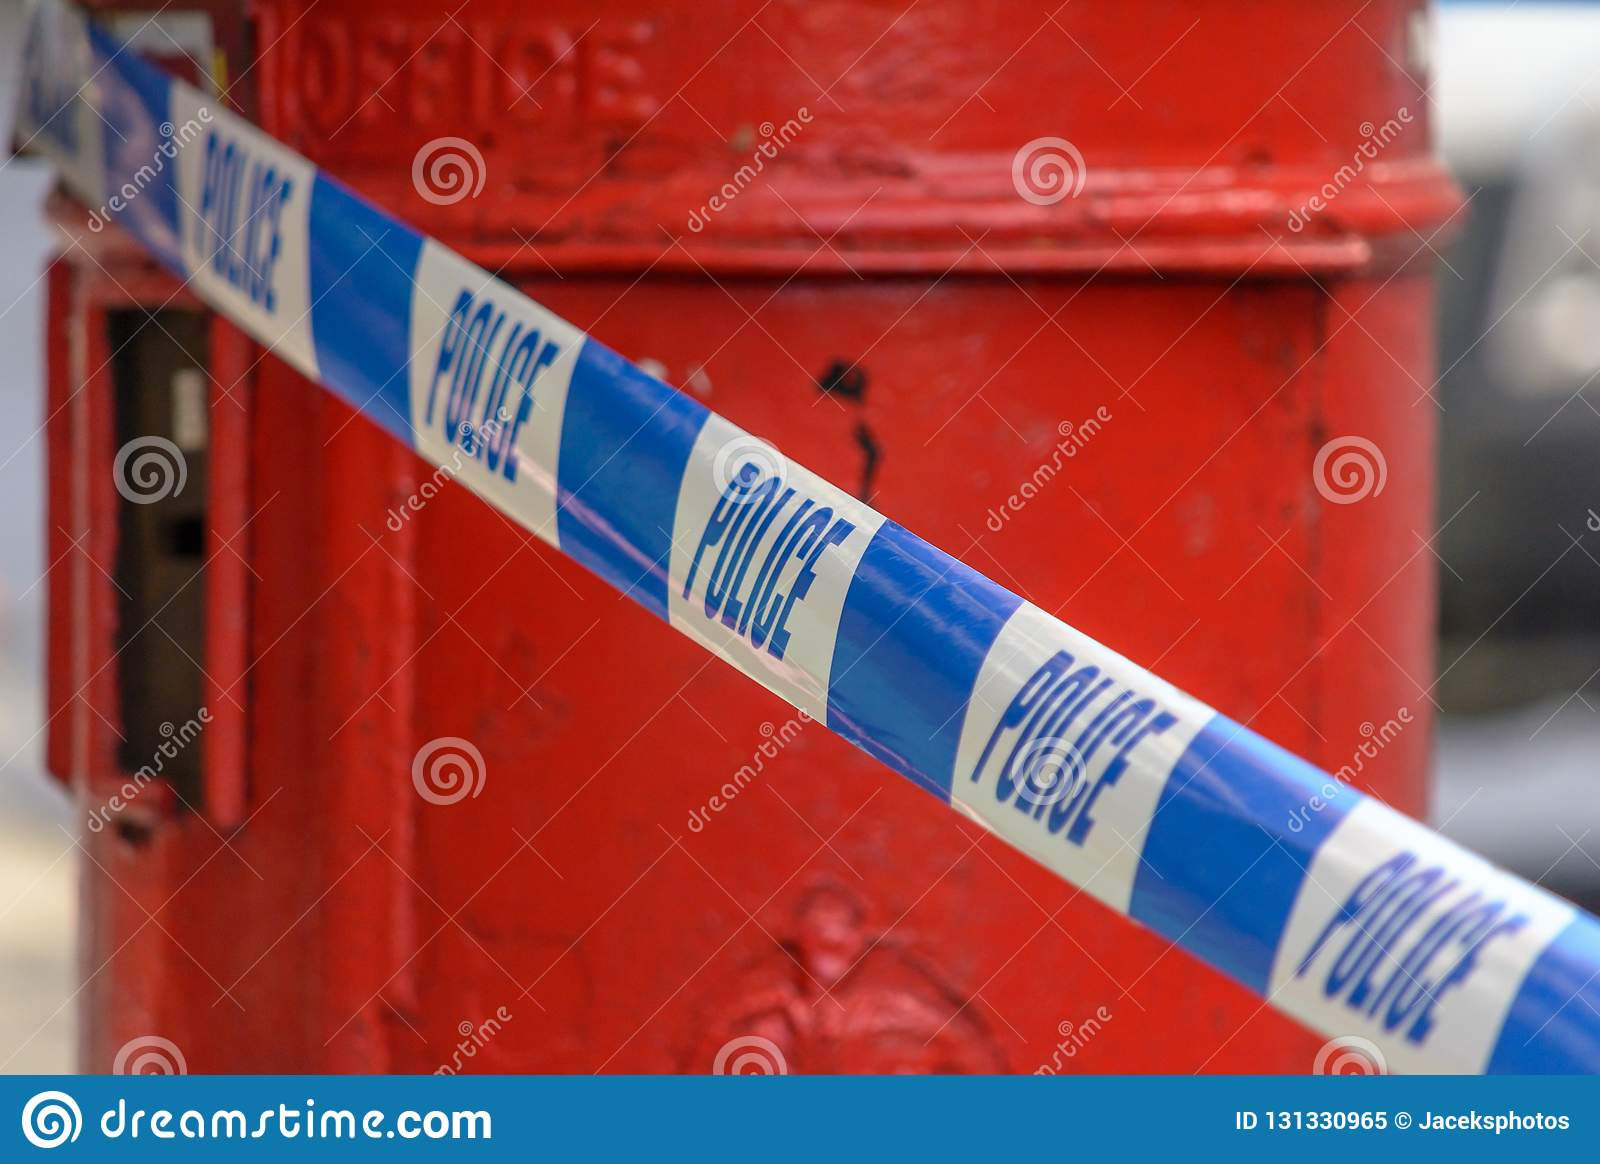 British Police Tape In Front Of Red Post Box